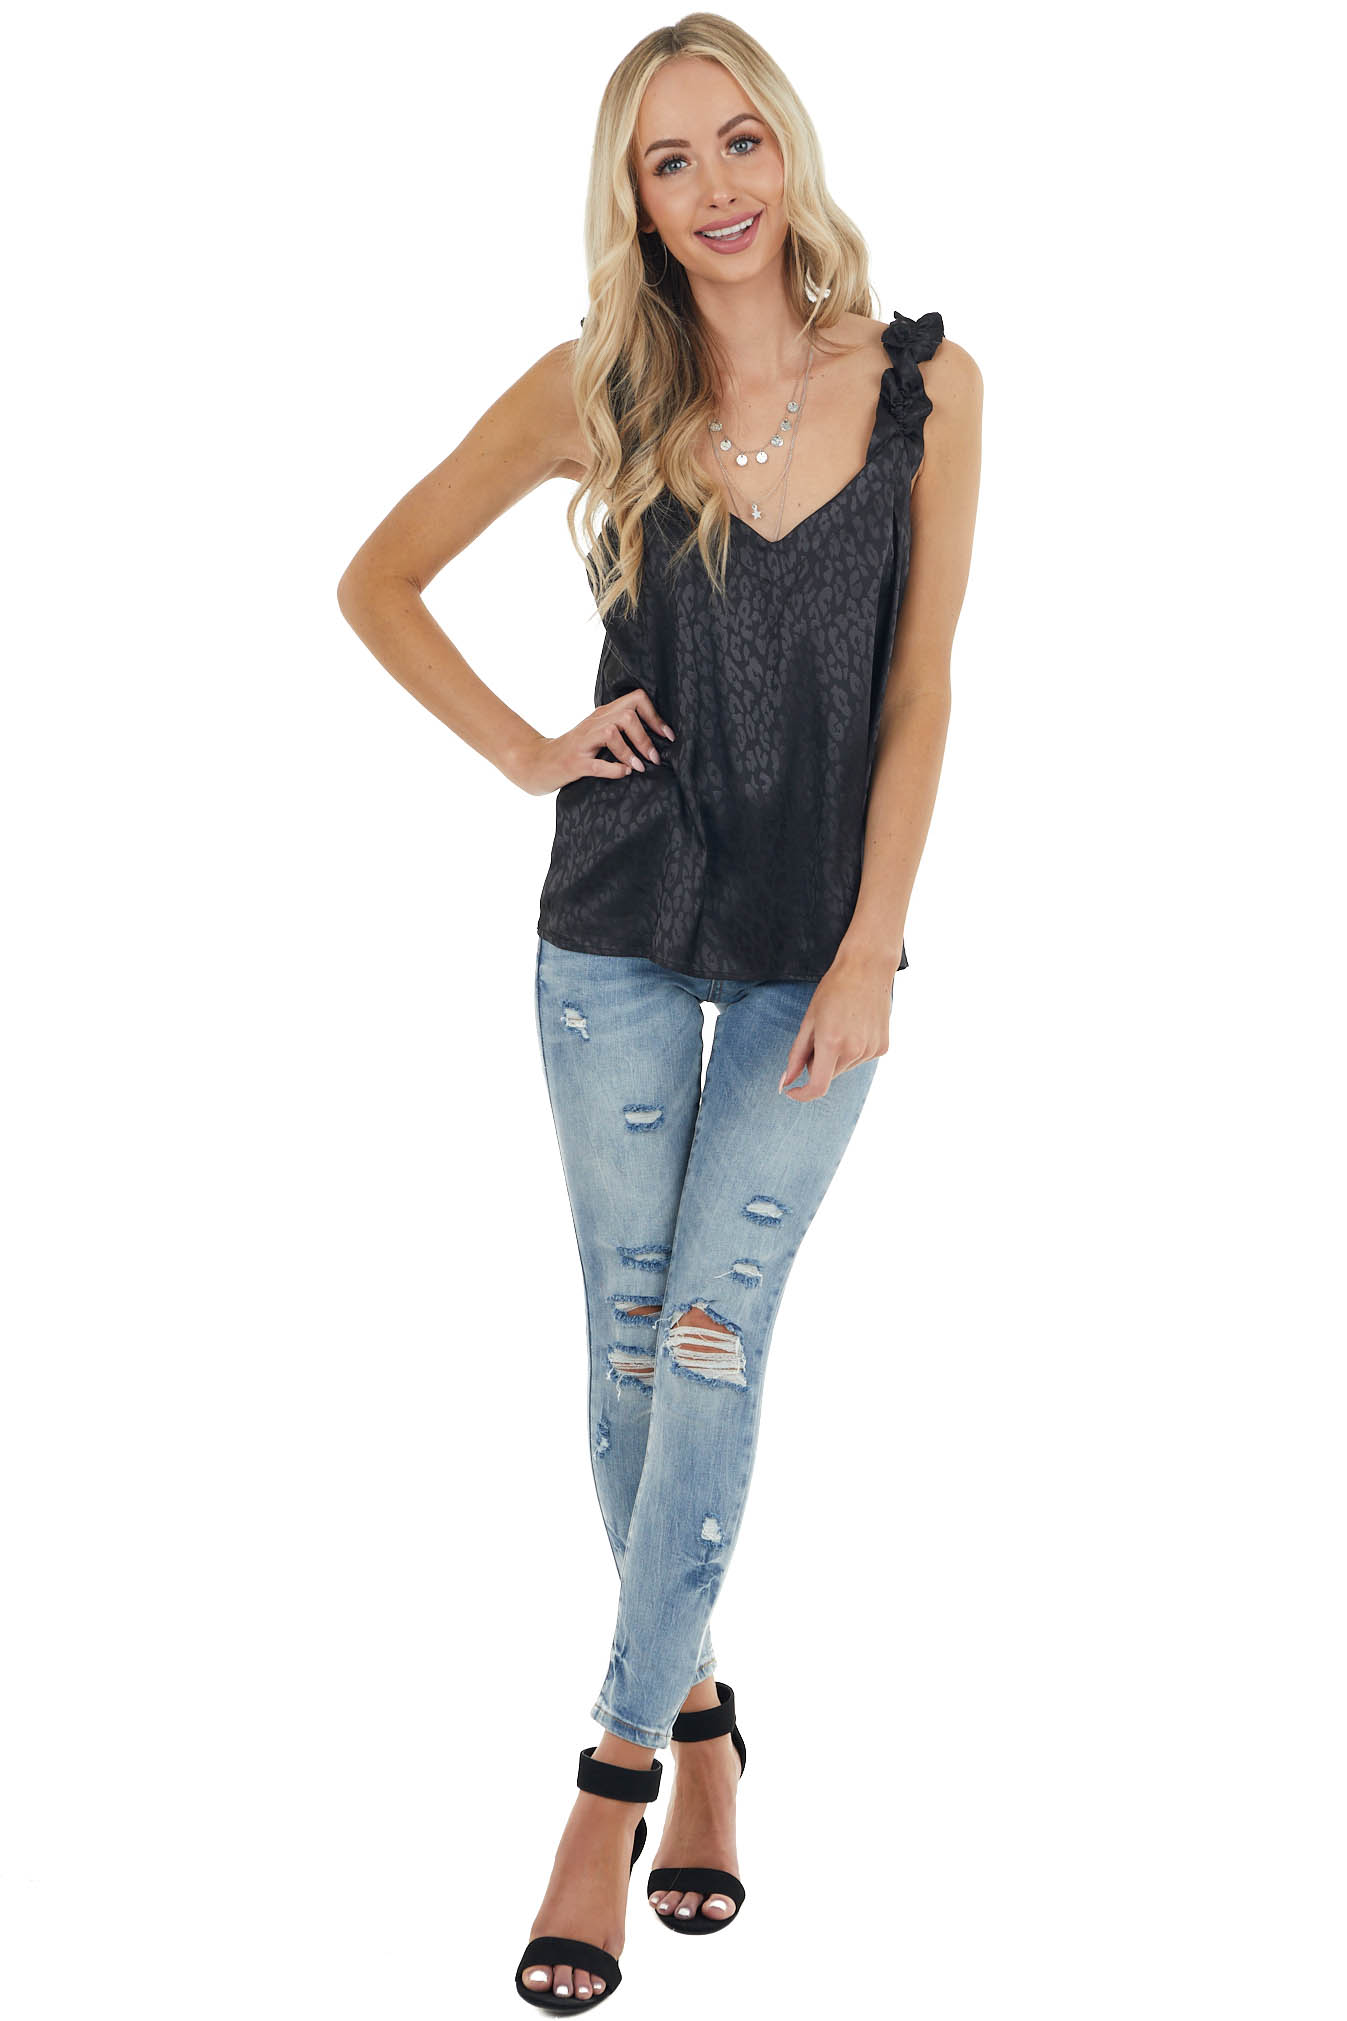 Black Leopard Print Tank Top with Elastic Ruffle Straps